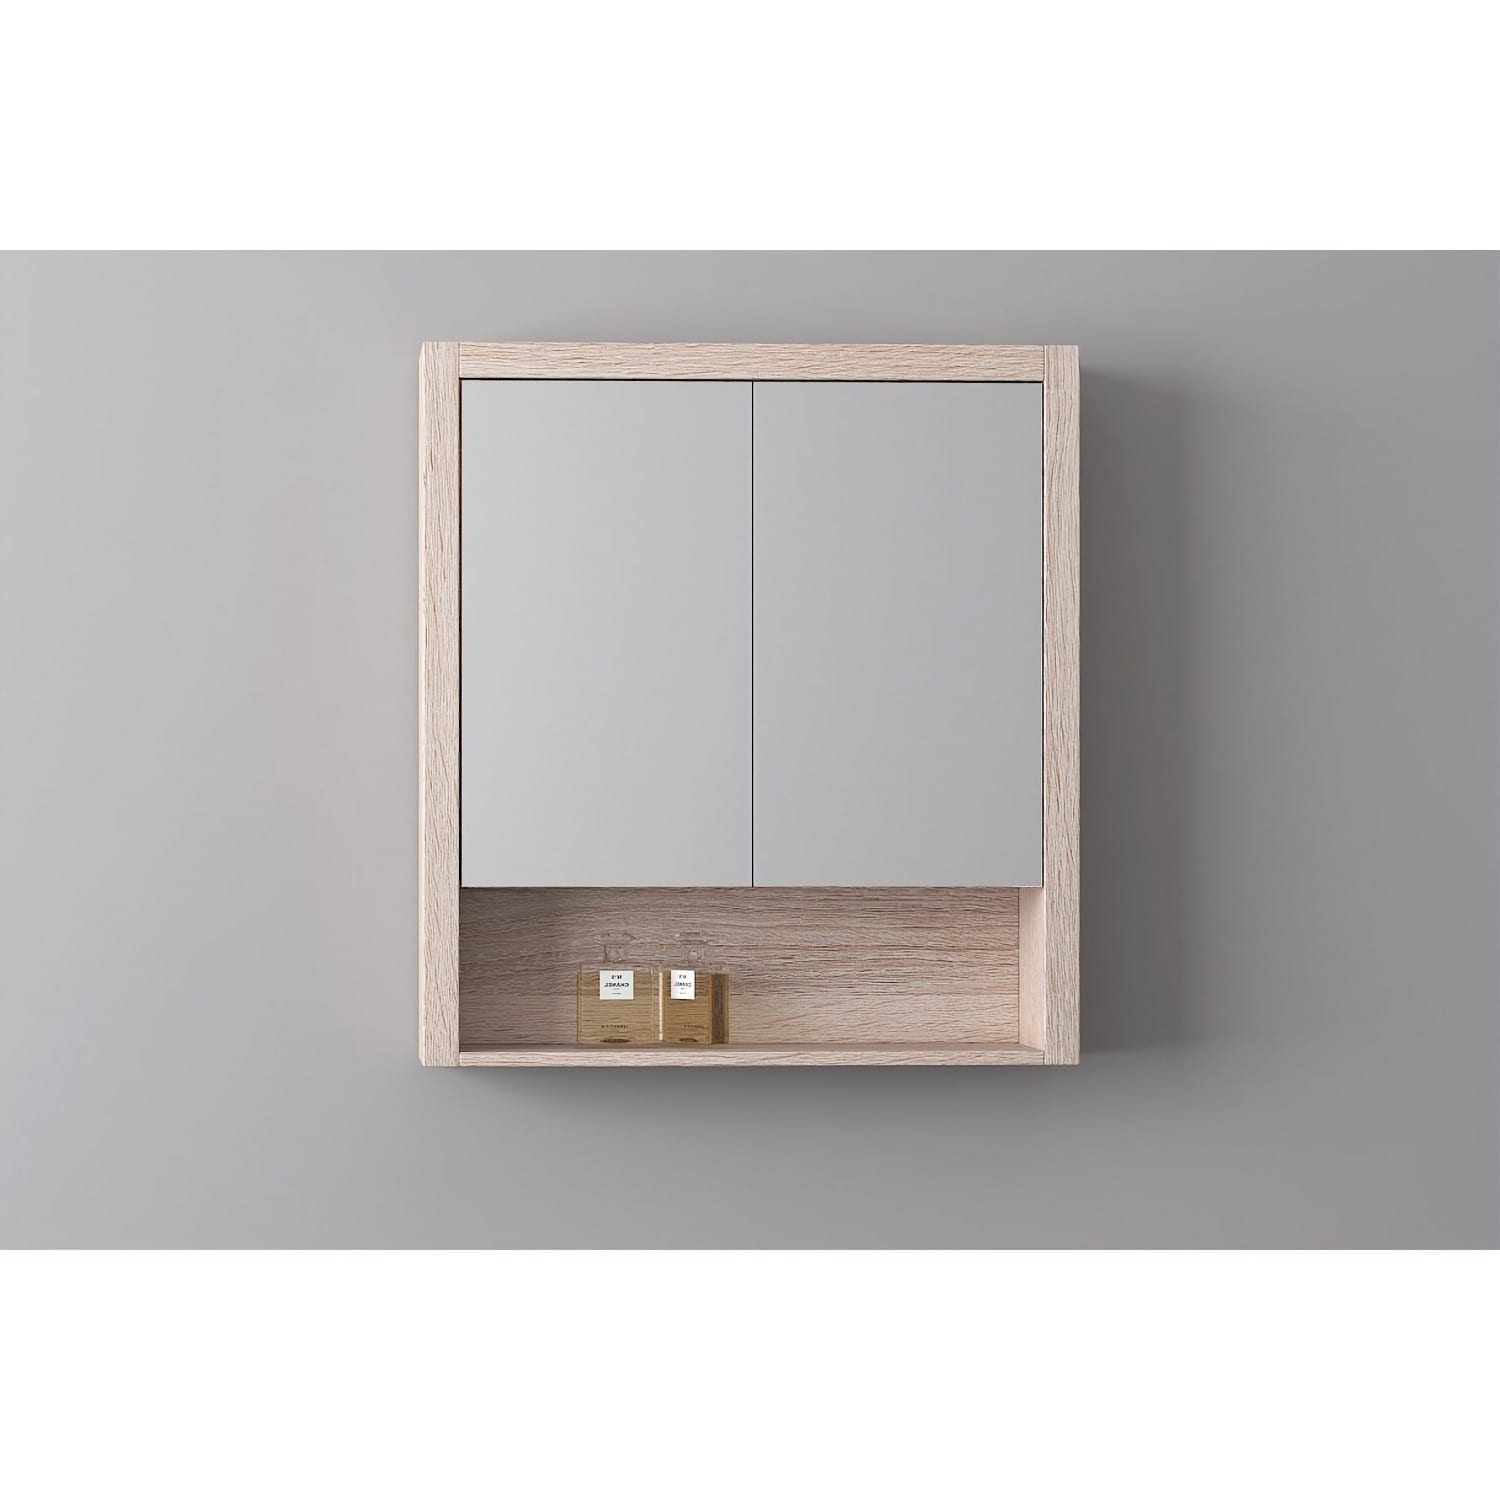 Britney 900 Mirror Cabinet in Oak